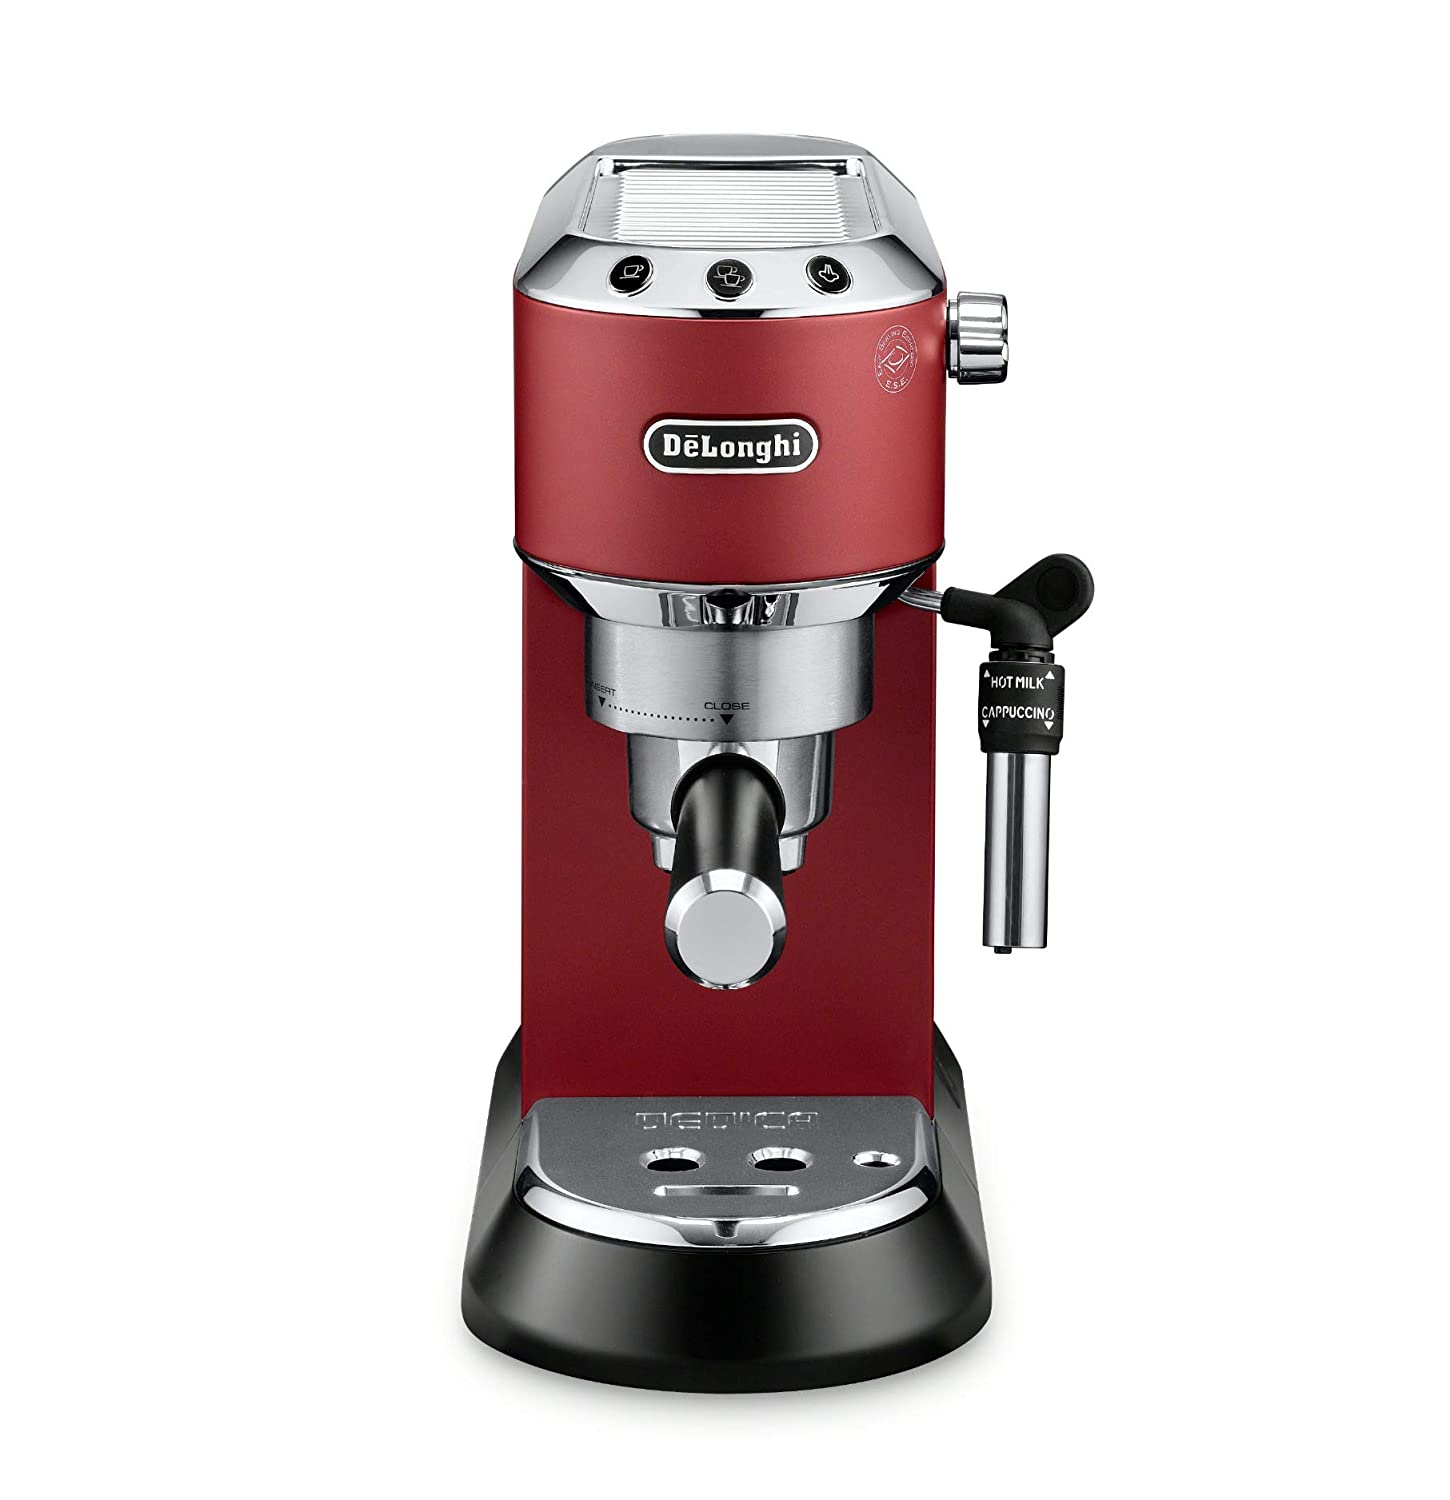 Delonghi Ec685r Freestanding Fully Automatic 11l Red Coffee Freestanding Red Stainless Steel 11 L Fully Automatic Manual